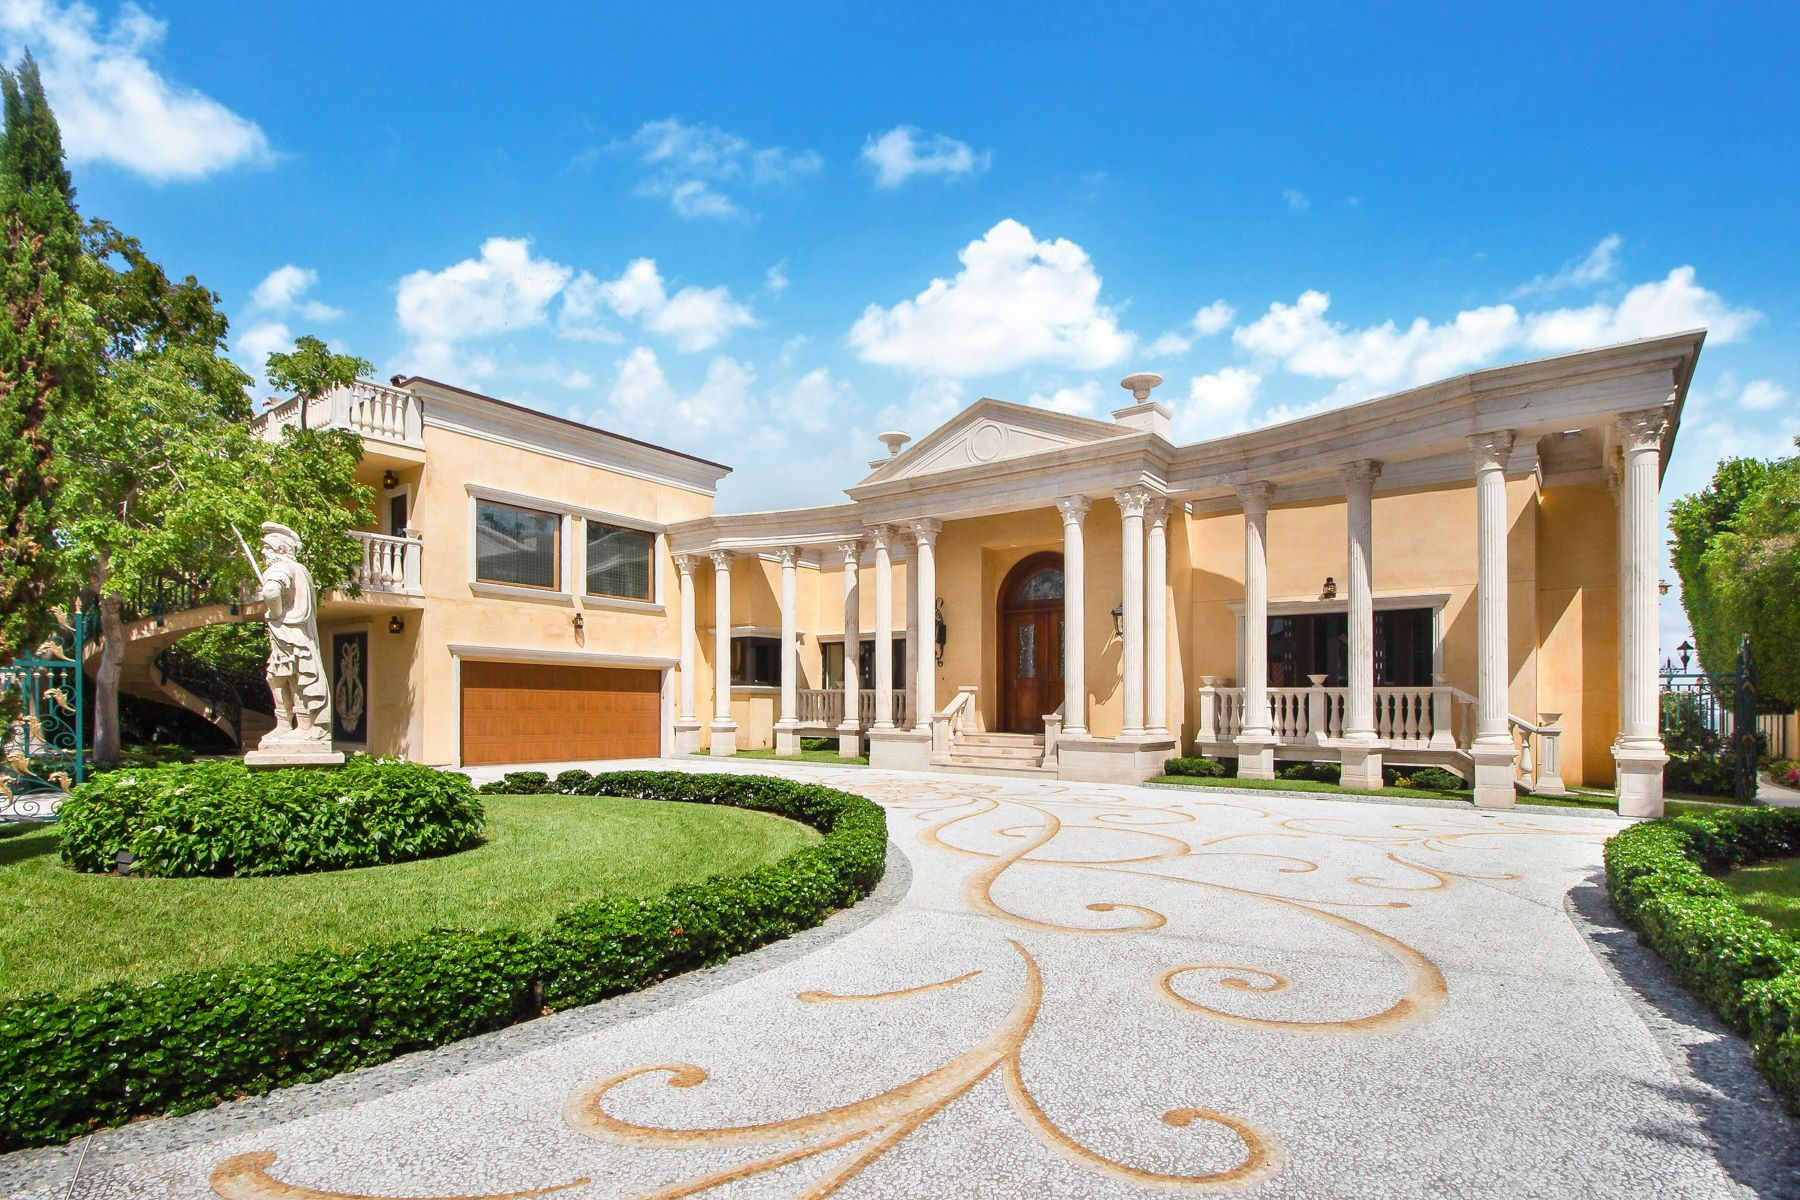 Single Family Homes for Active at 921 N Venetian Dr Miami, Florida 33139 United States